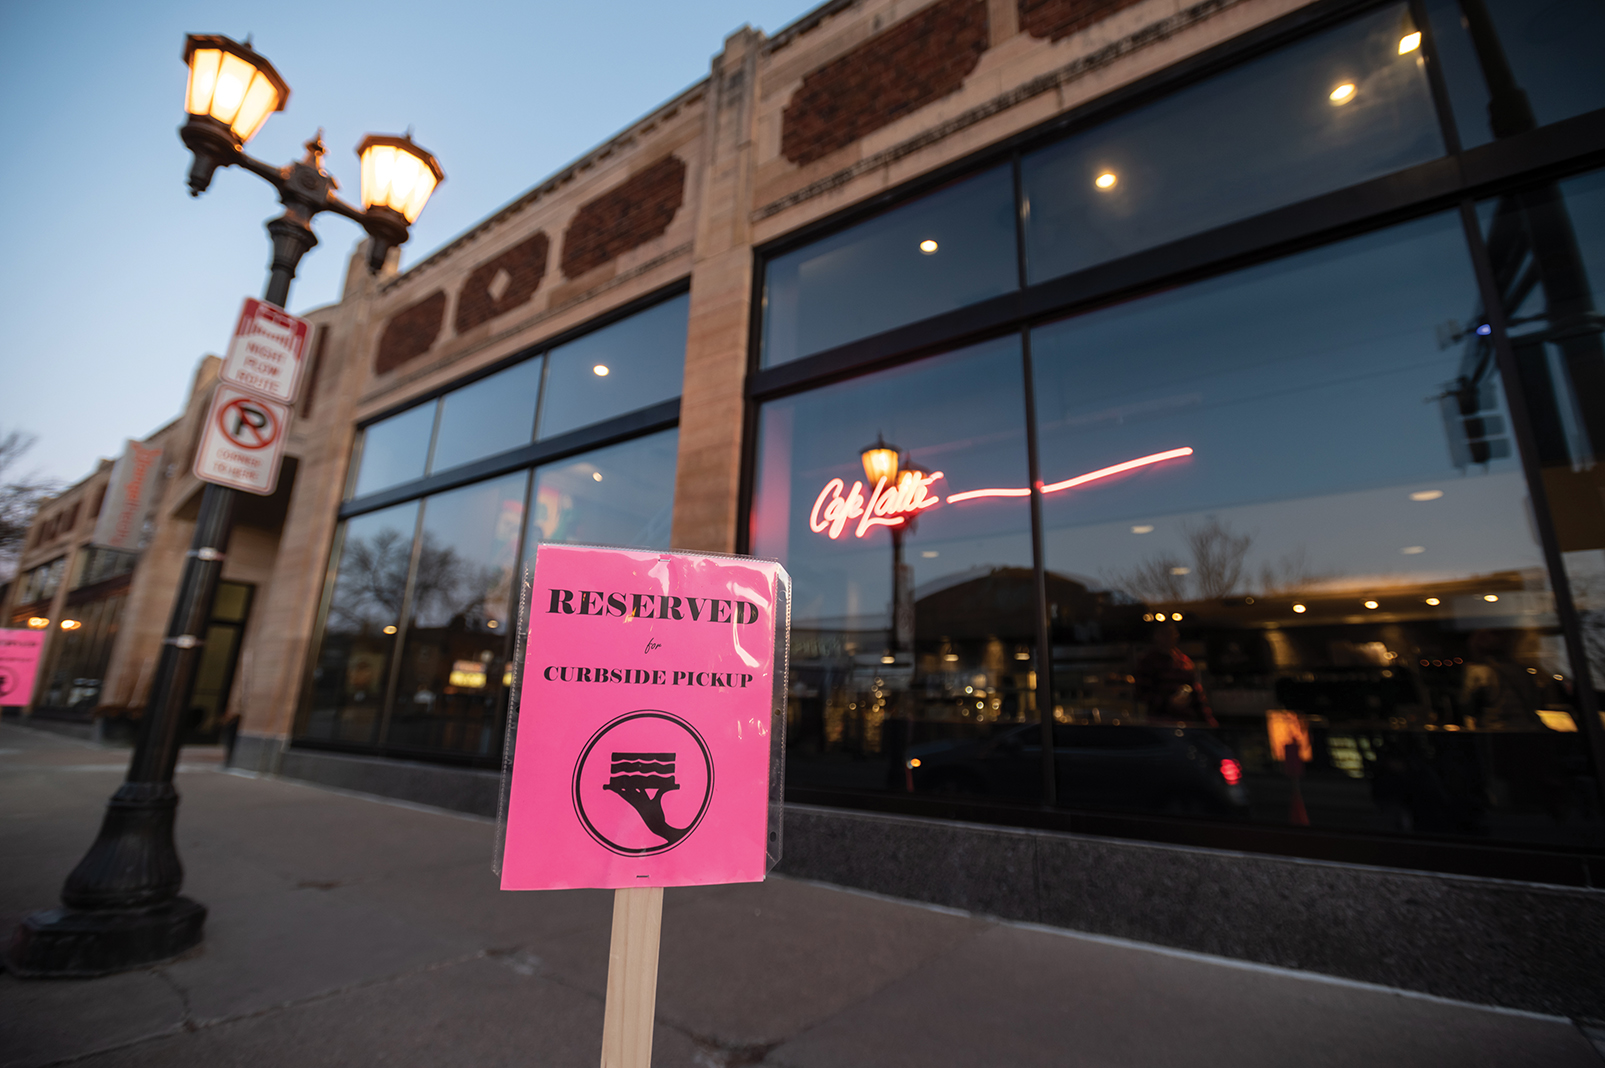 Local favorites like Cafe Latte in St. Paul have adopted curbside takeout service